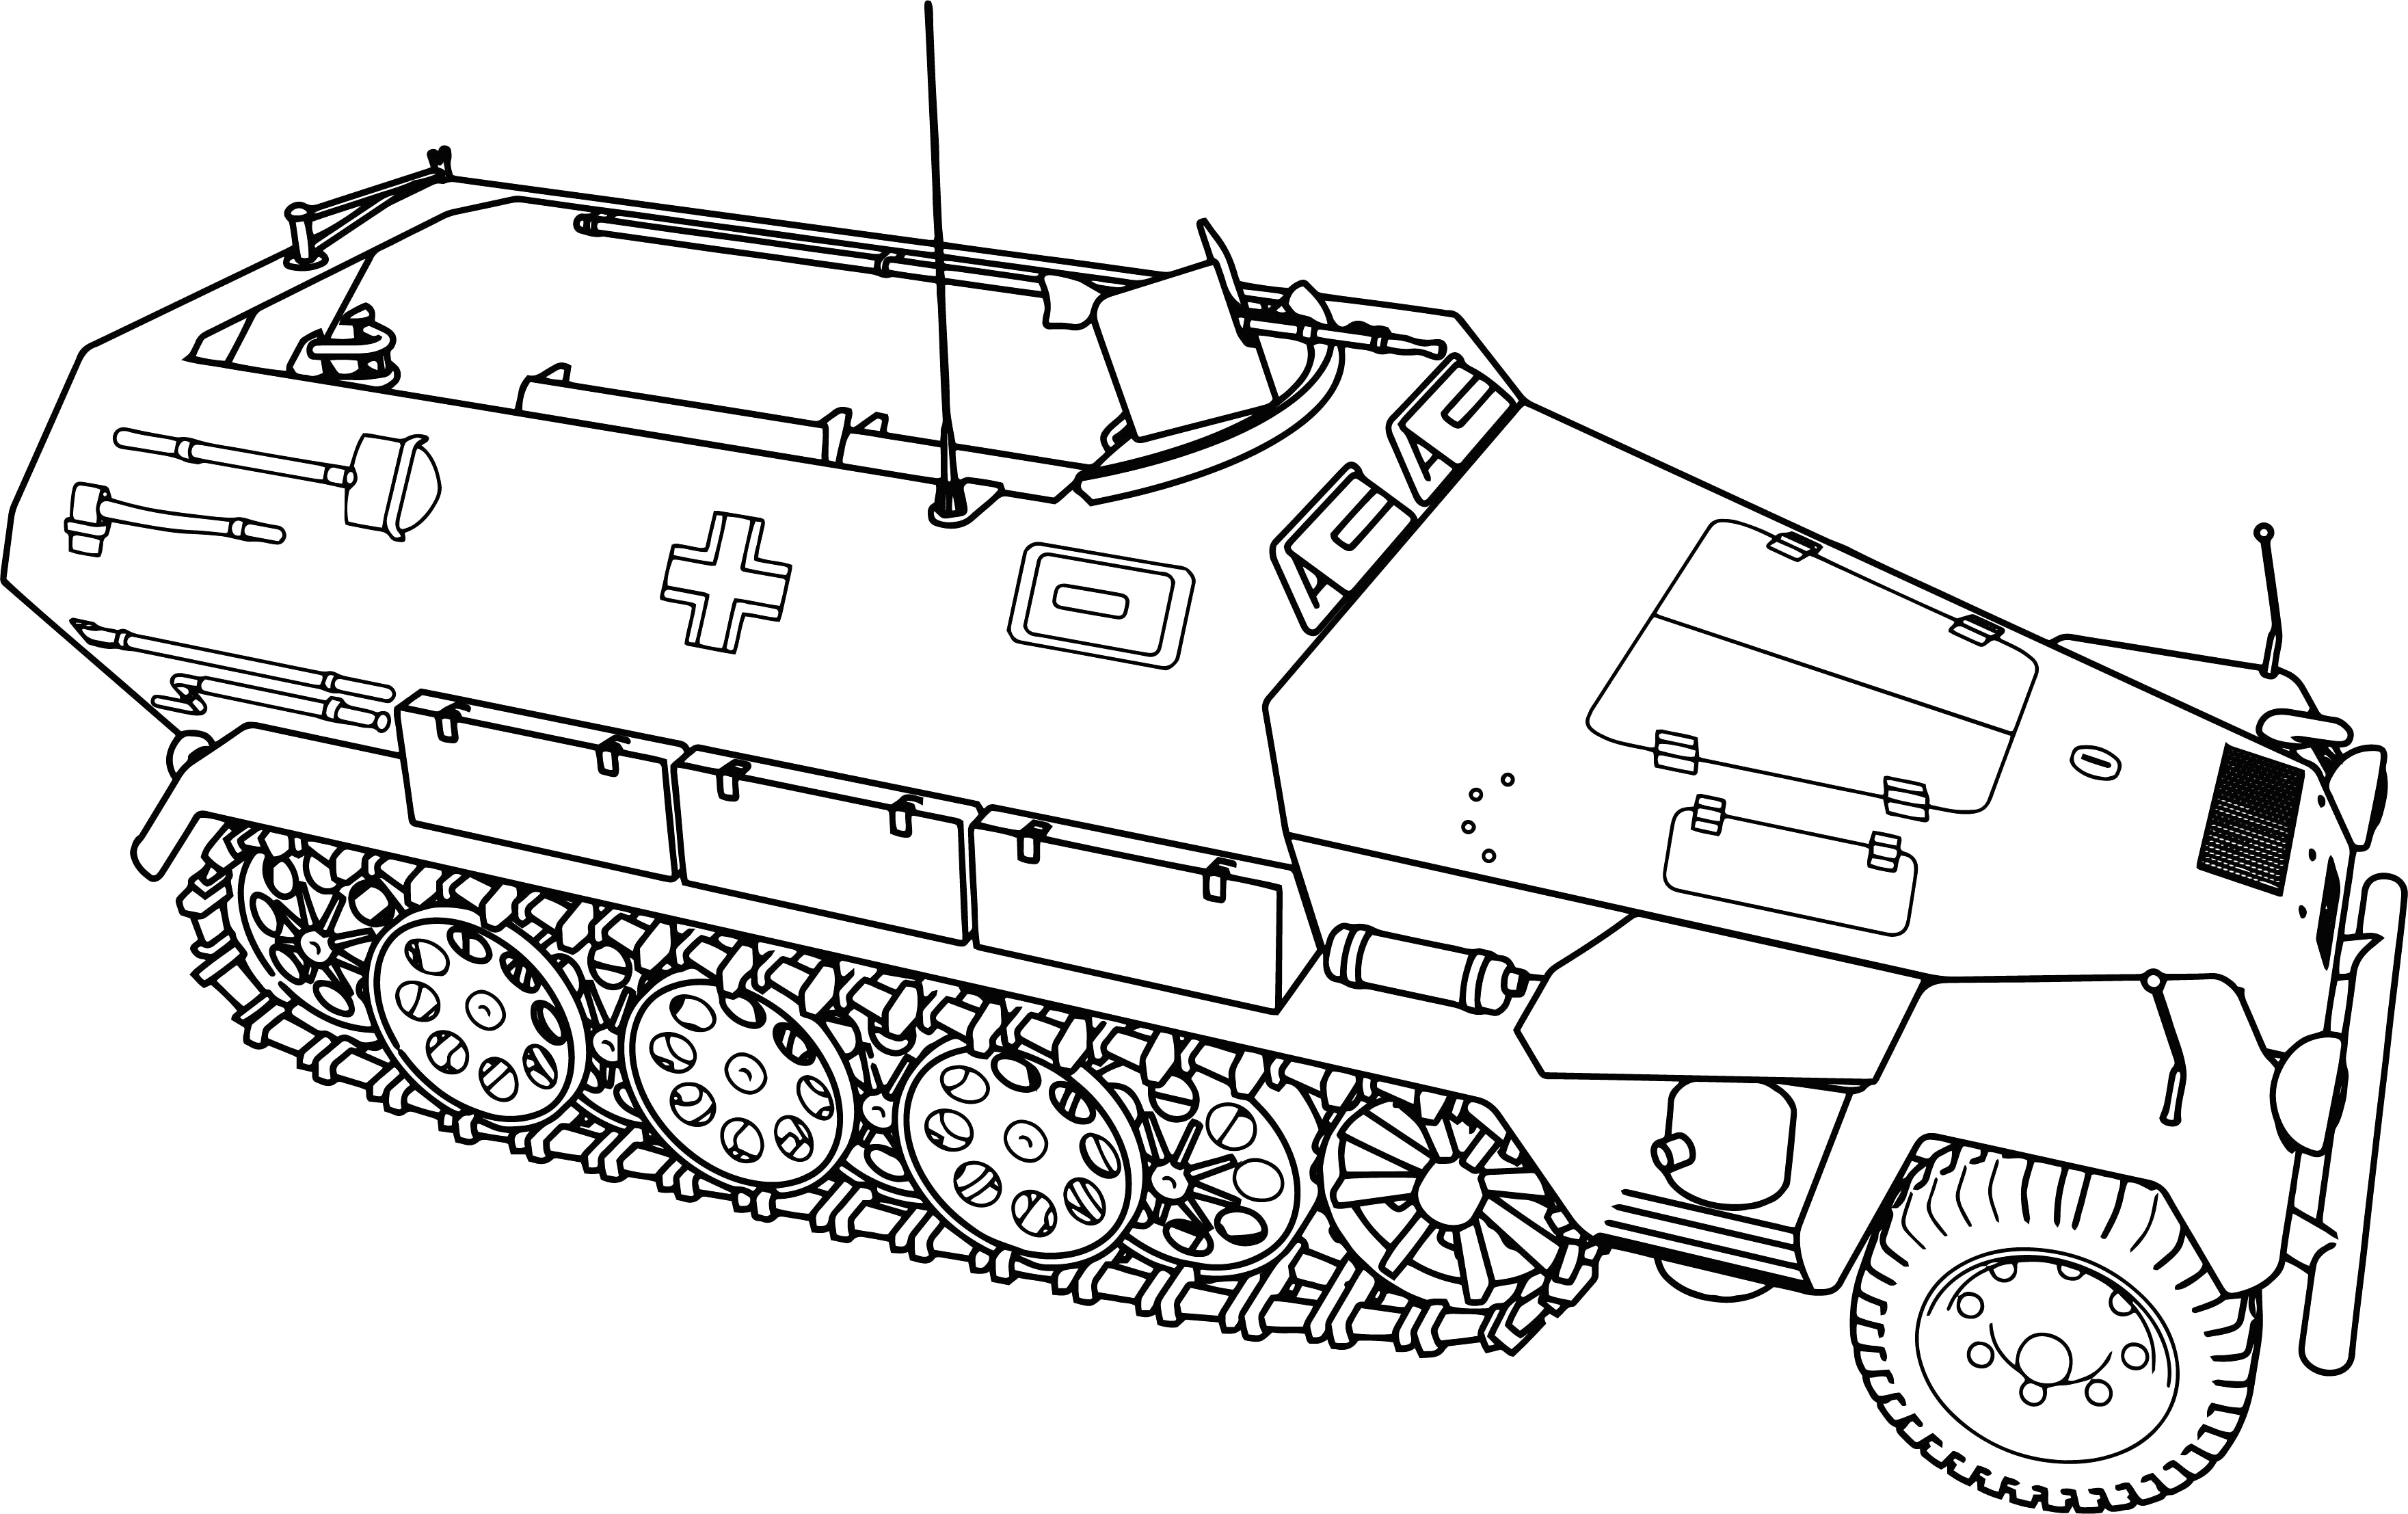 army tanks coloring pages army tank coloring page m730a1 tank coloring page coloring pages army tanks